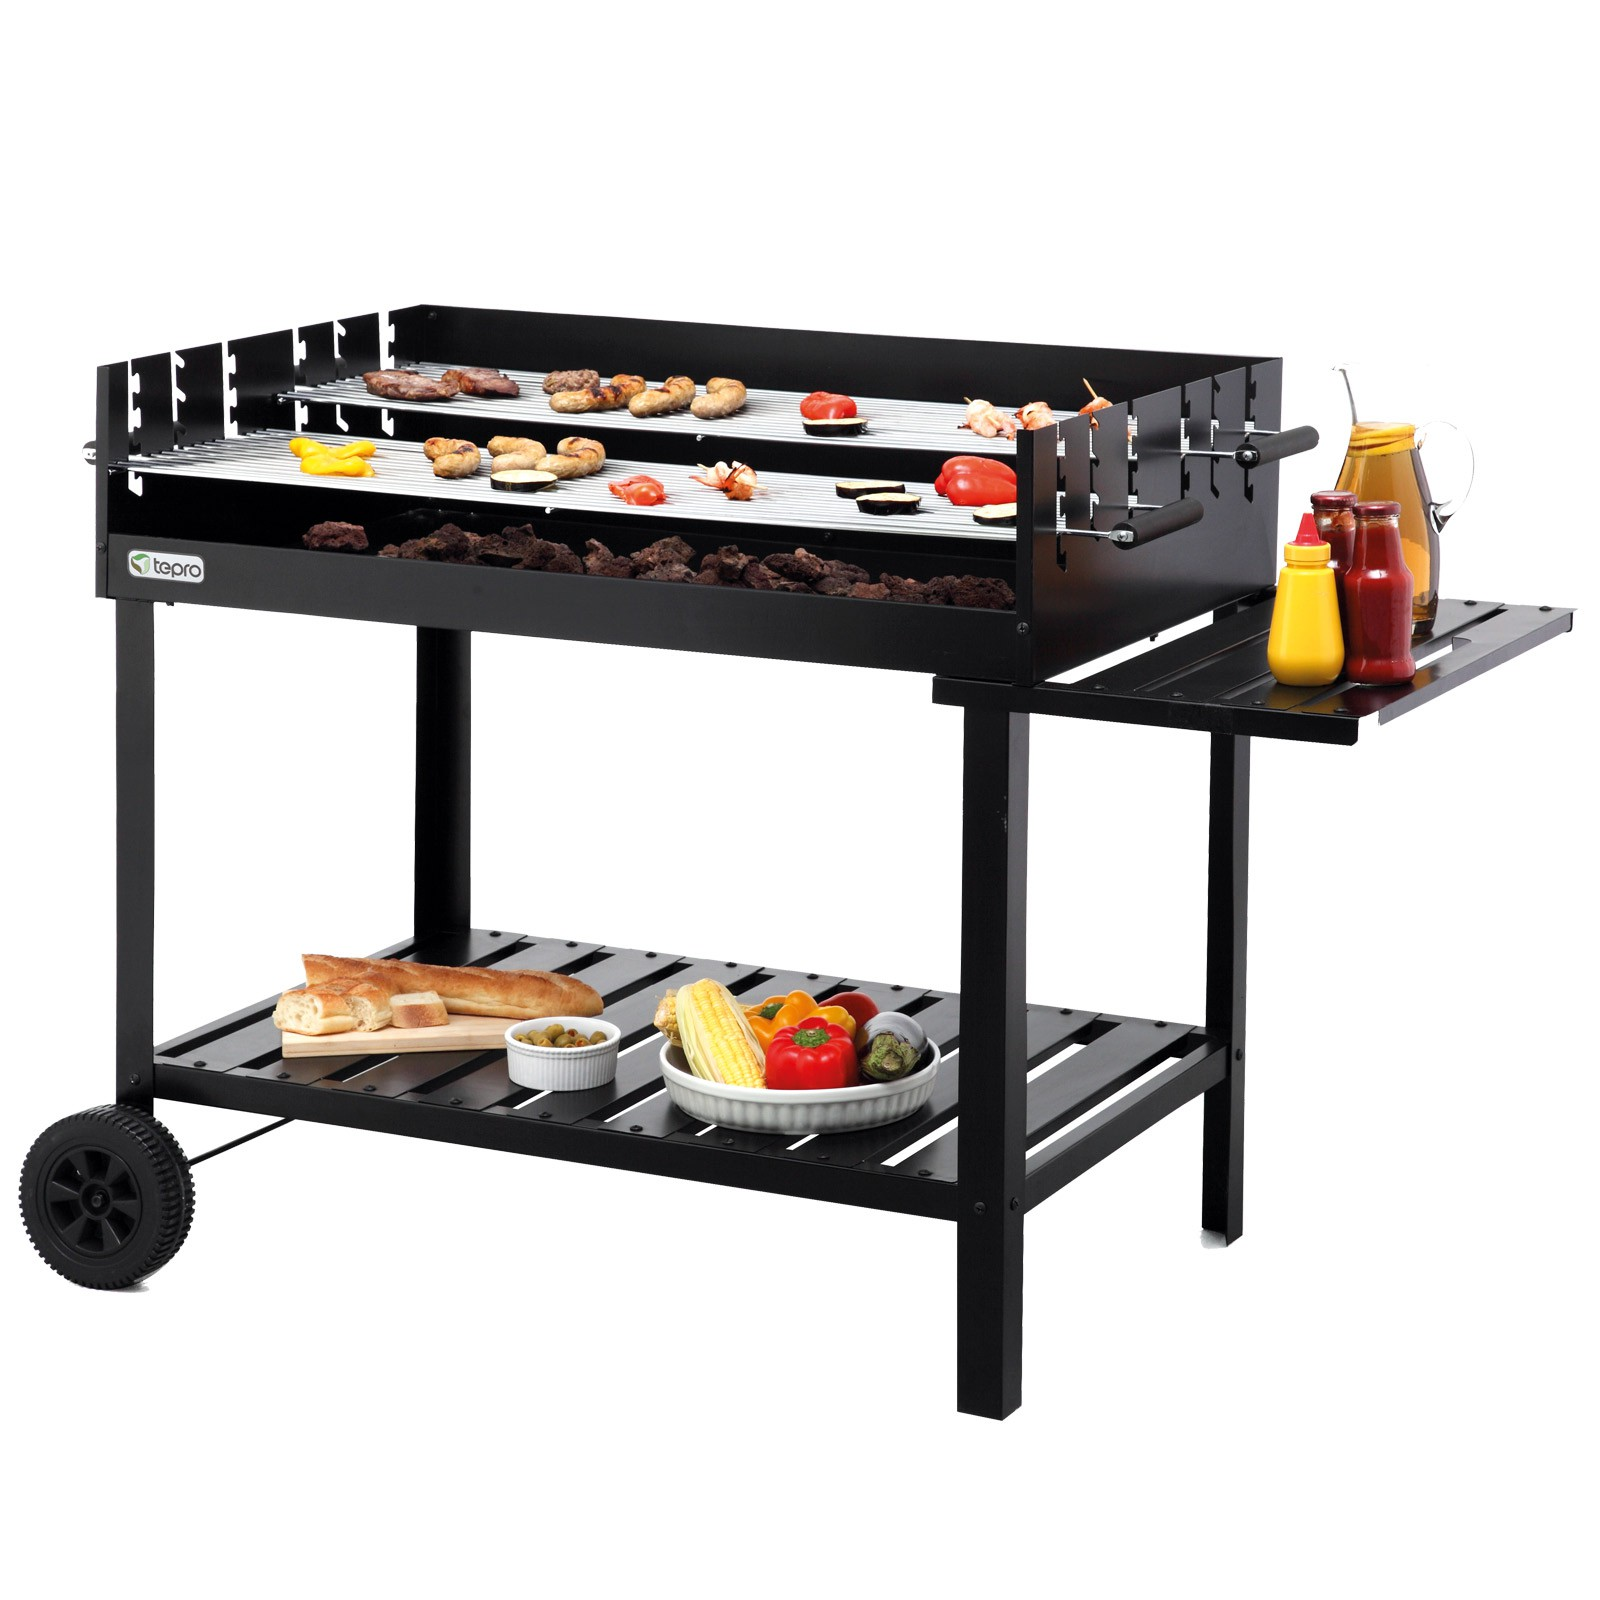 tepro holzkohlengrill kohlegrill bbq grill kohle grillwagen atlanta 4011964029910 ebay. Black Bedroom Furniture Sets. Home Design Ideas